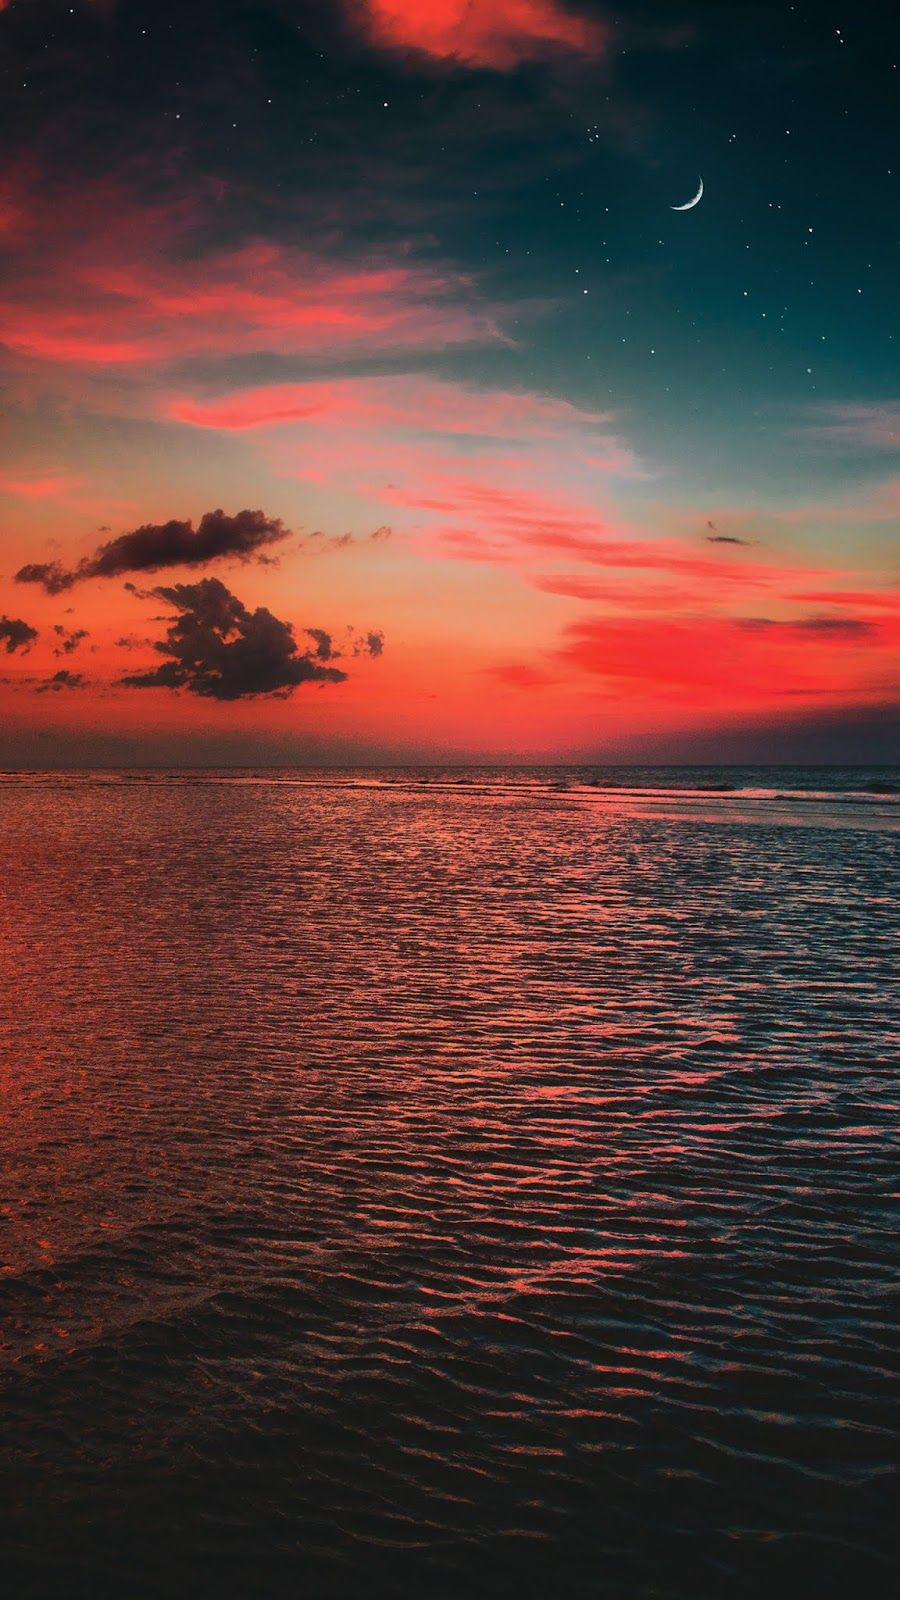 In The Night Sky With Images Night Sky Wallpaper Sunset Wallpaper Beach Sunset Wallpaper